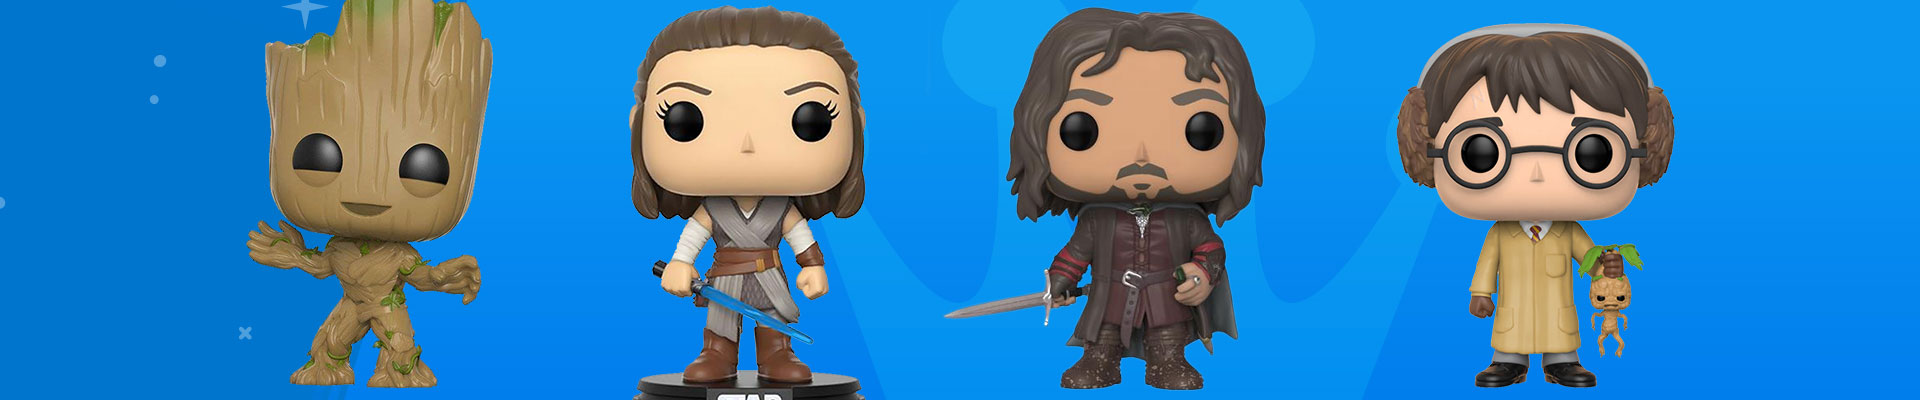 Figurines Funko - Pop!